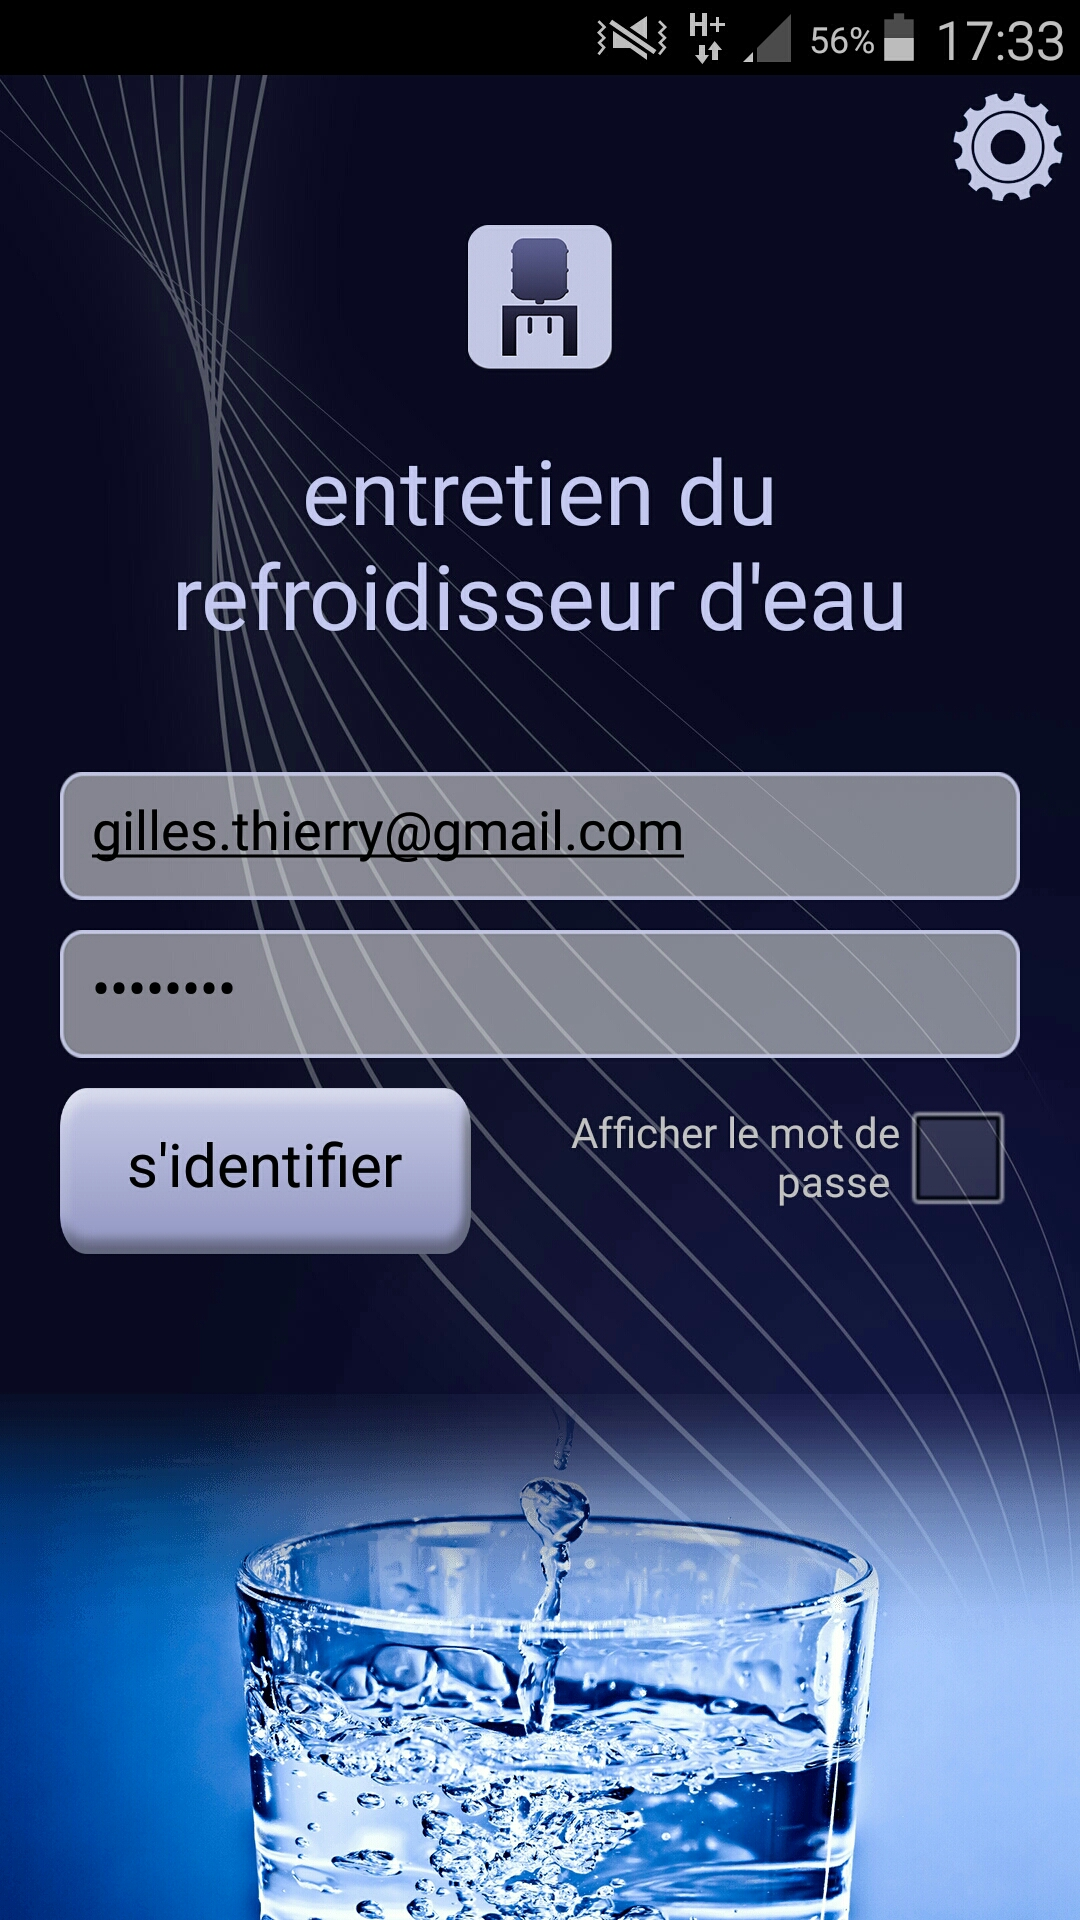 ginstr_app_waterCoolerMaintenance_FR_1